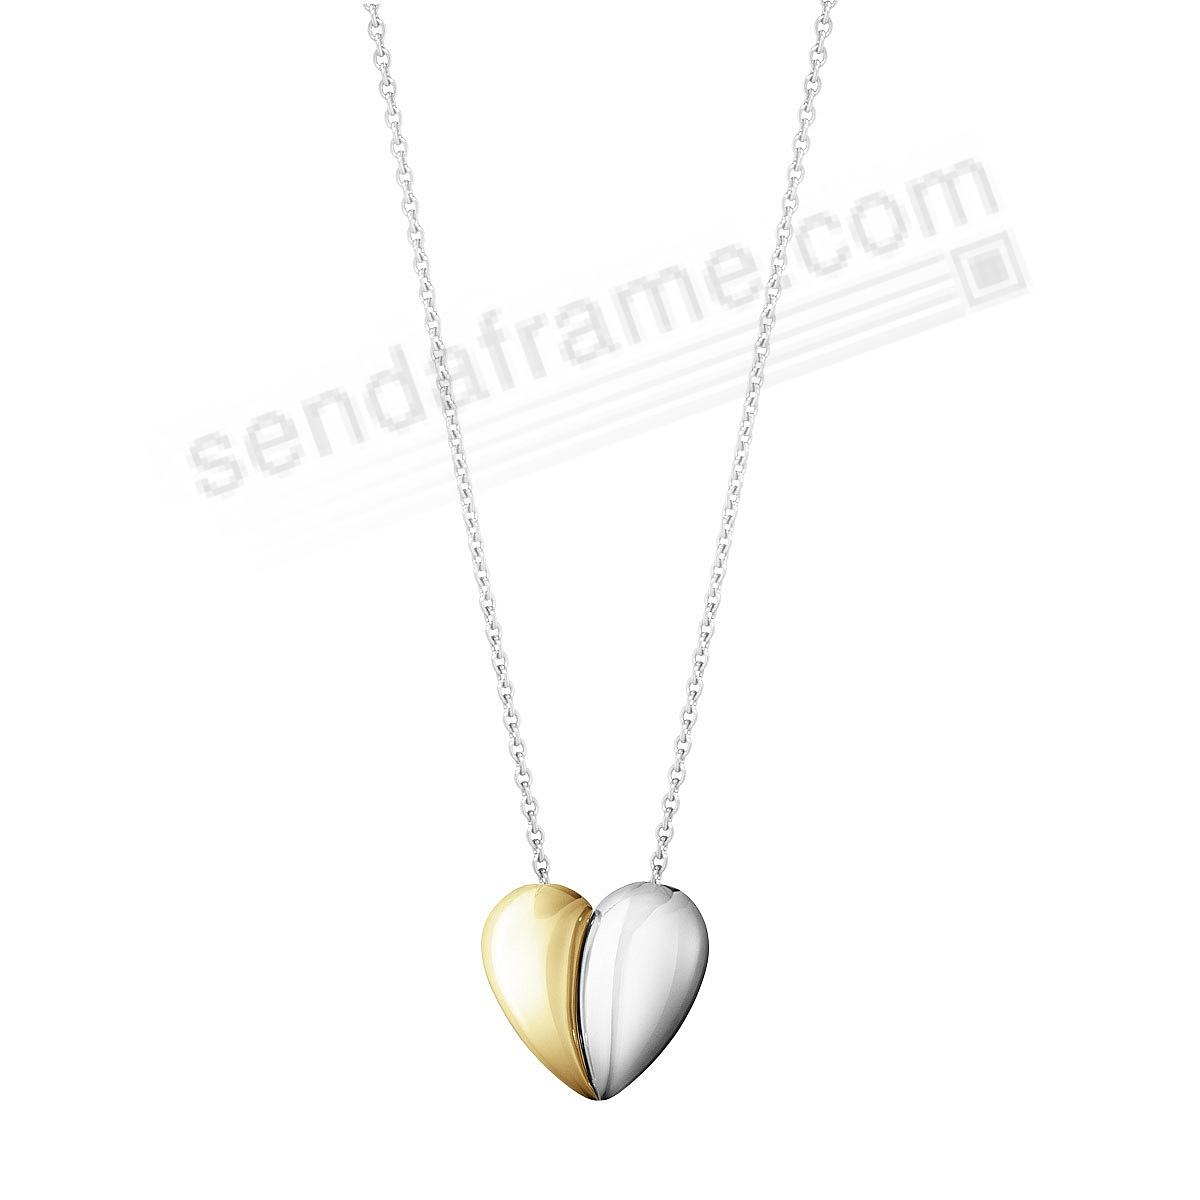 HEARTS OF Georg Jensen® 18kt/Sterling Necklace With Pendant